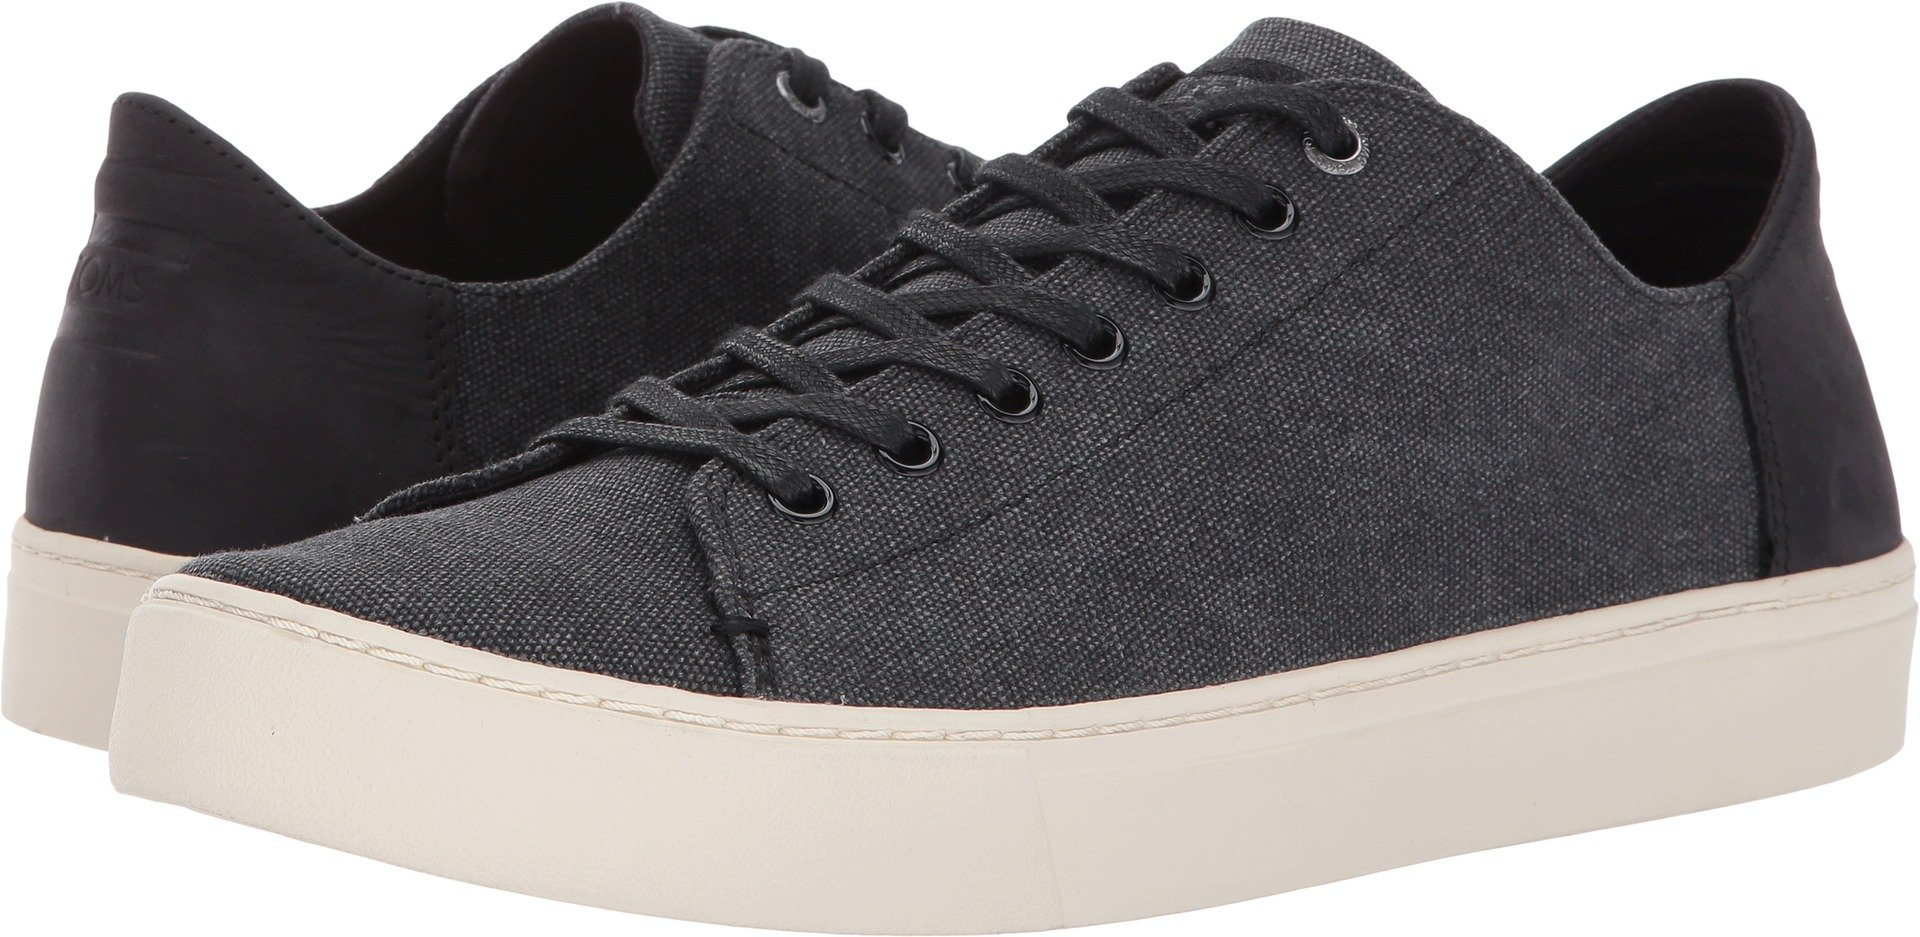 TOMS Men's Lenox Black Washed Canvas/Leather Oxford (9 D(M) US)